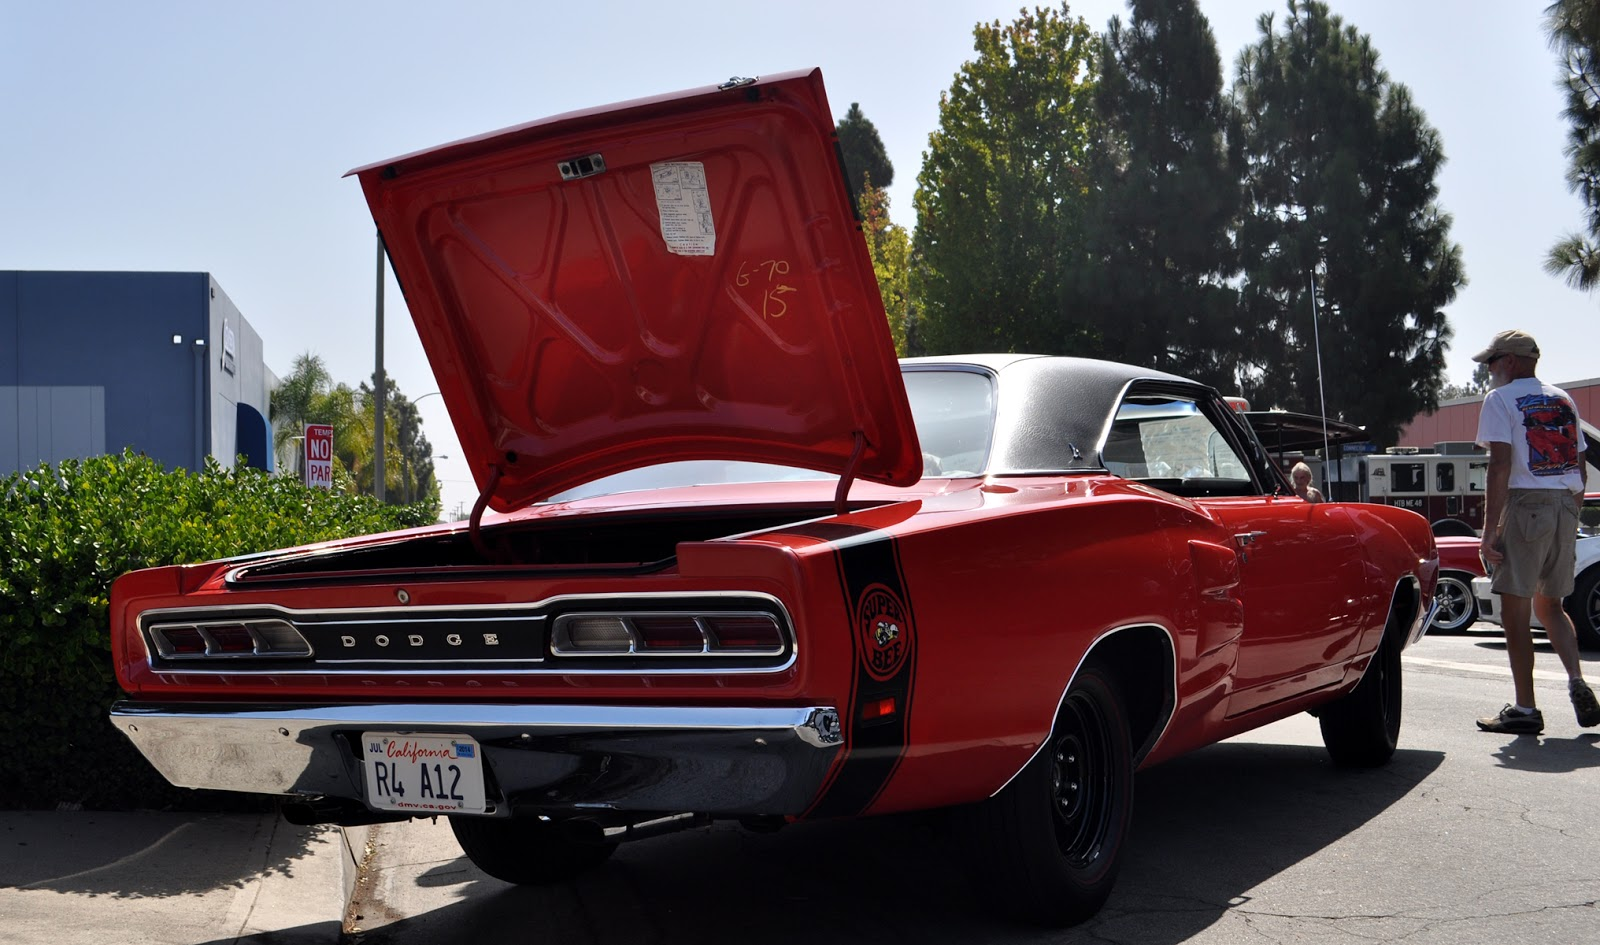 a 440 six pack Super Bee, commonly known as an A12, was at